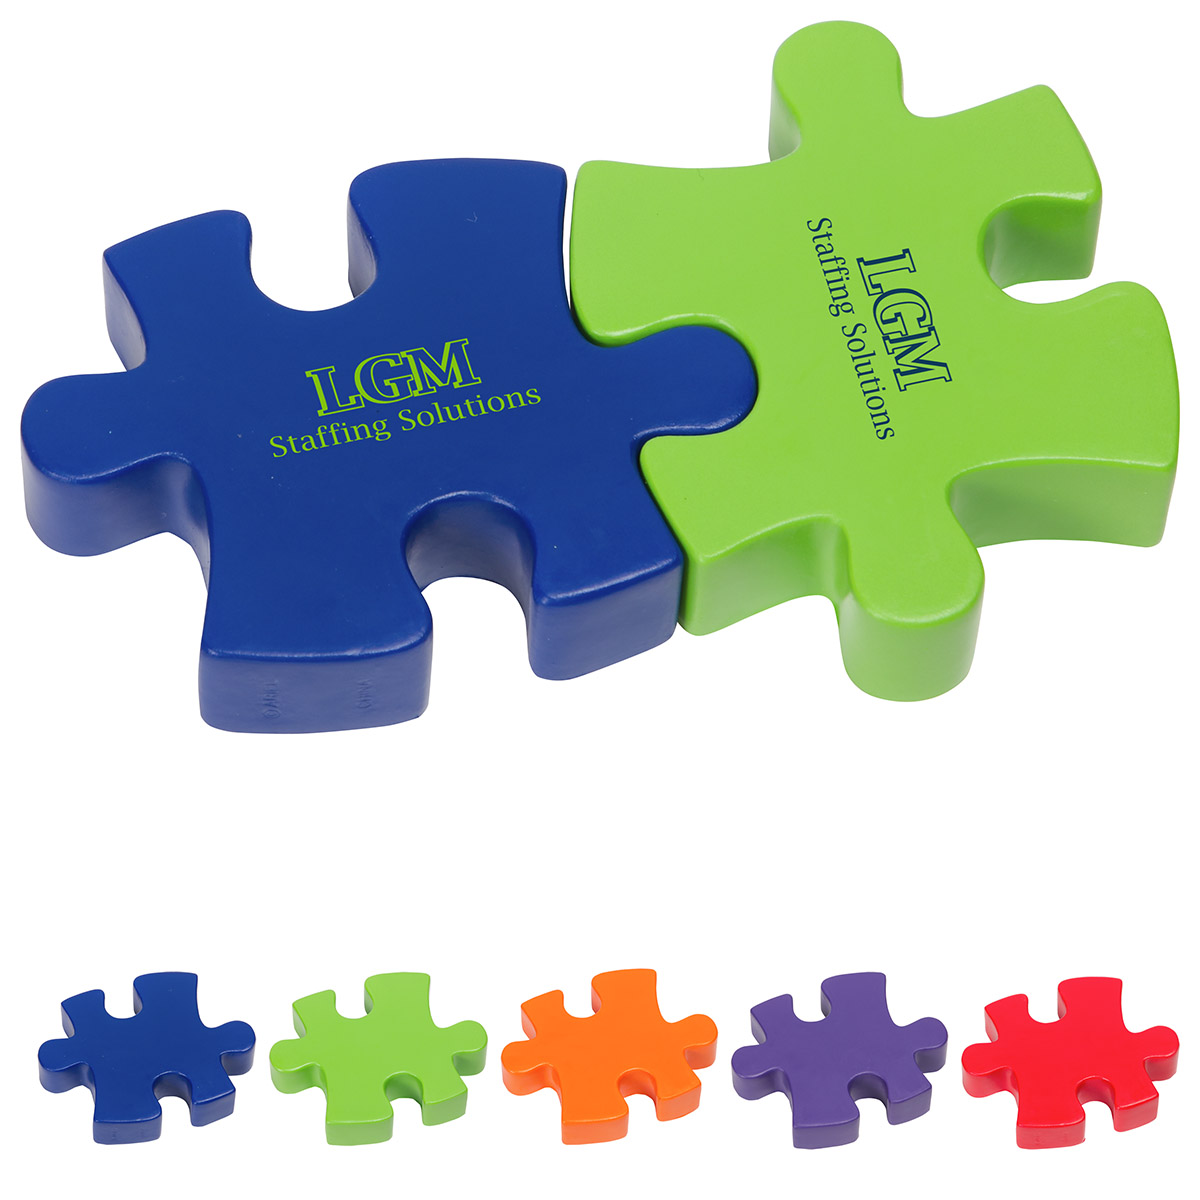 2-Piece Connecting Puzzle Set, LGS-2P17 - 1 Colour Imprint